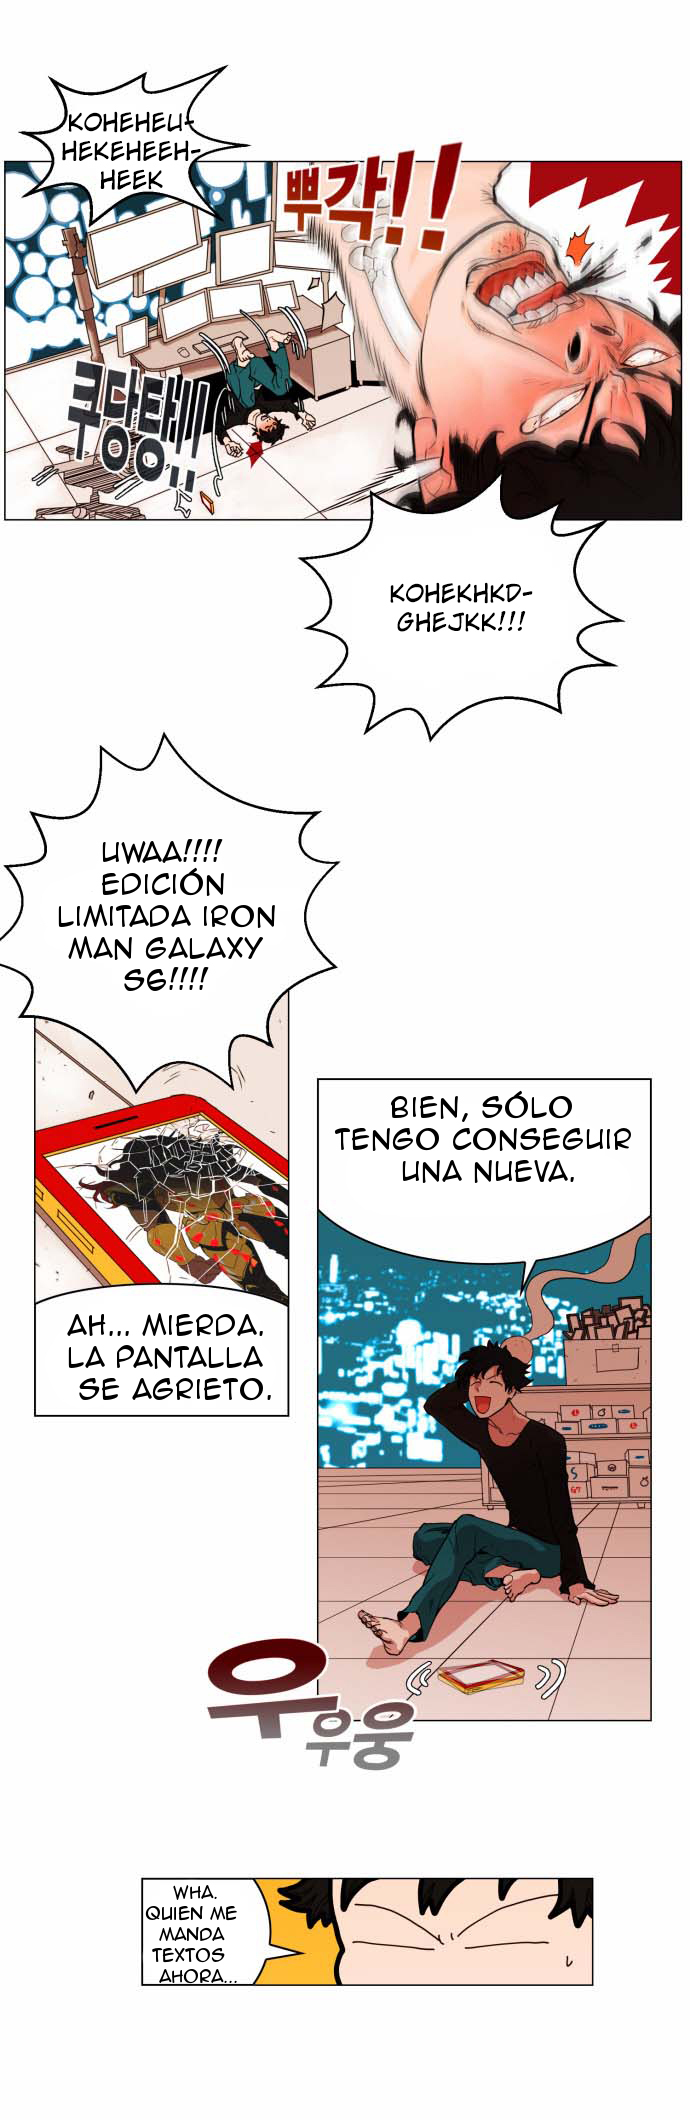 https://c5.ninemanga.com/es_manga/31/18975/440204/73a2e4a4721851fab207428a7288f46e.jpg Page 3